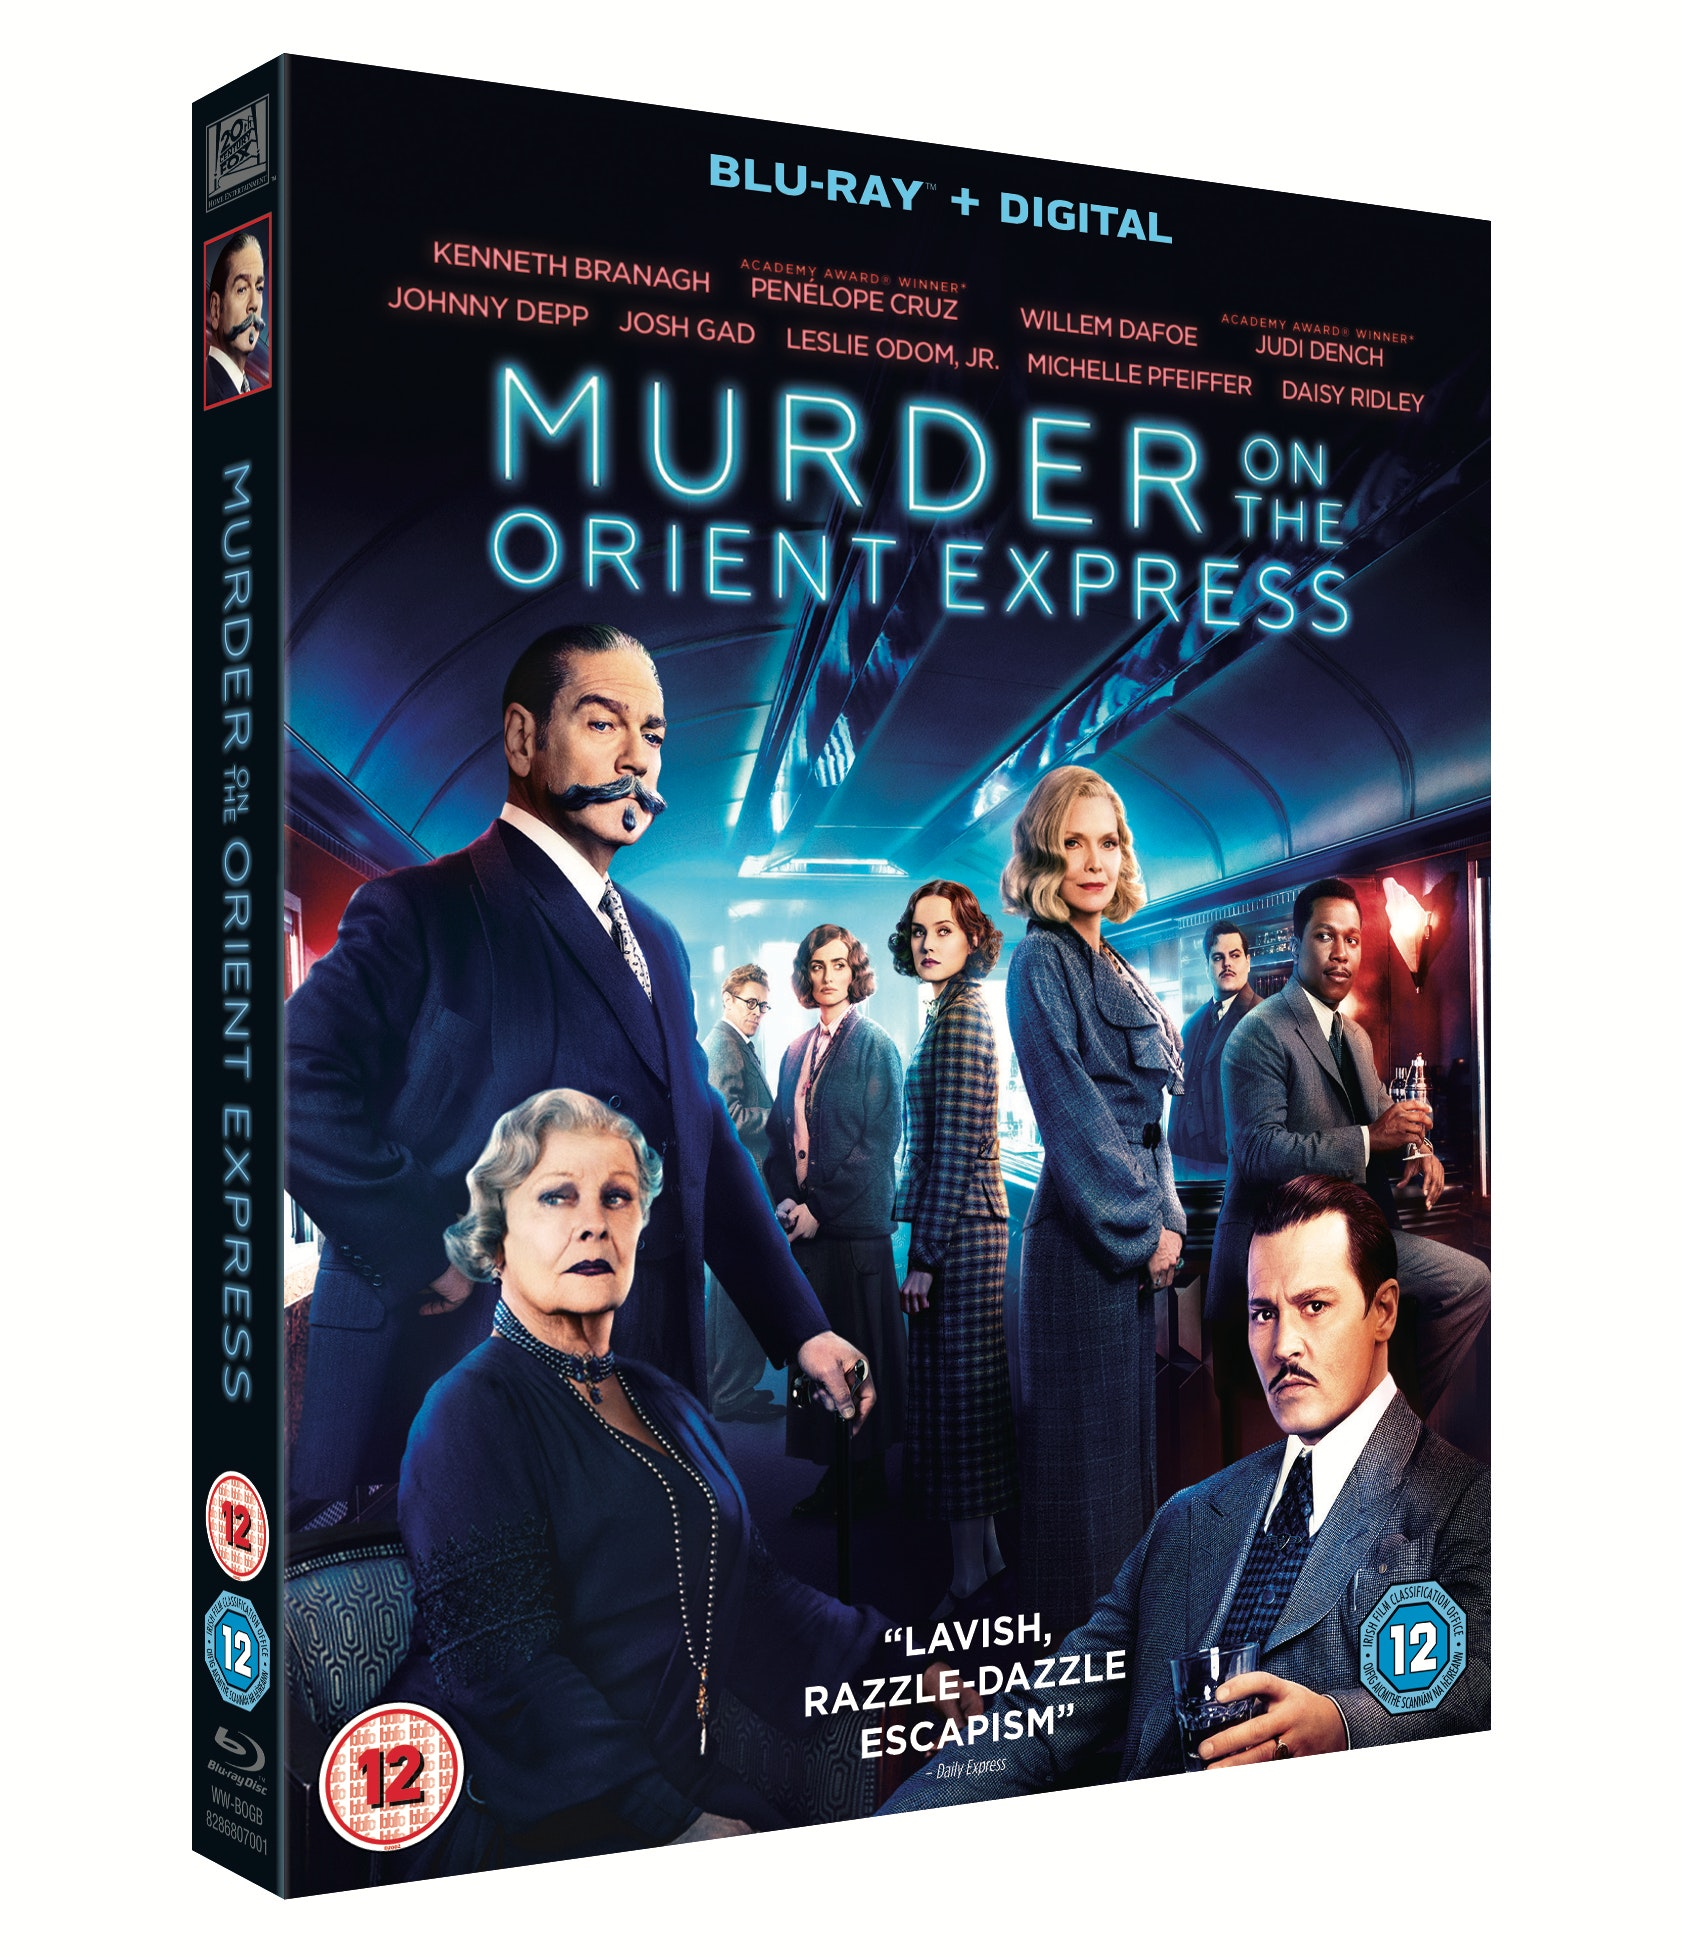 Win! Murder on the Orient Express On Blu-ray, Out Now! sweepstakes